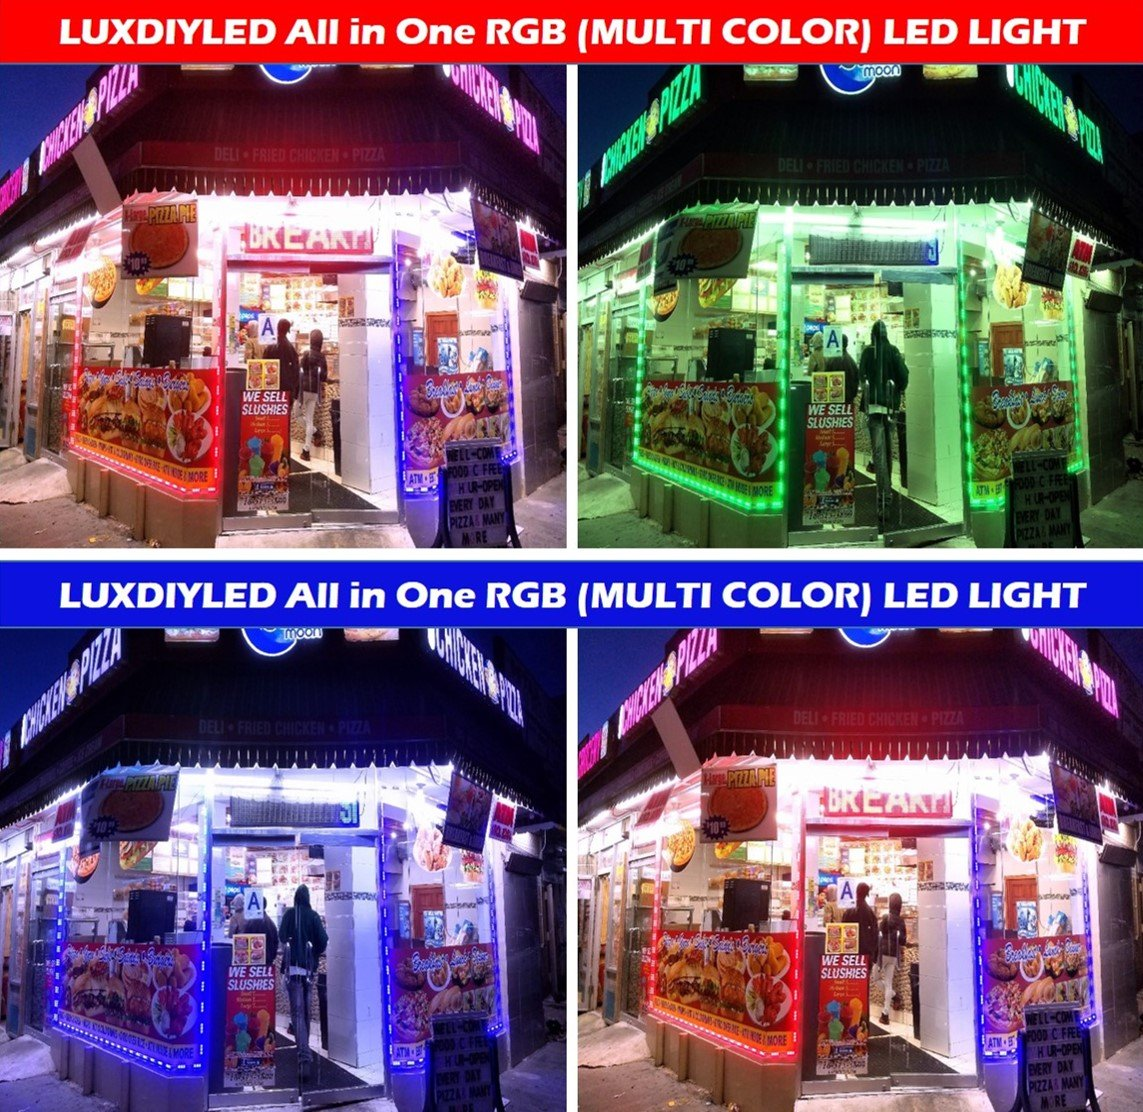 LUX LED All in One DIY LED Kit for Outdoor Built-in Protective Cap Plug & Play (Multi Color 50ft)